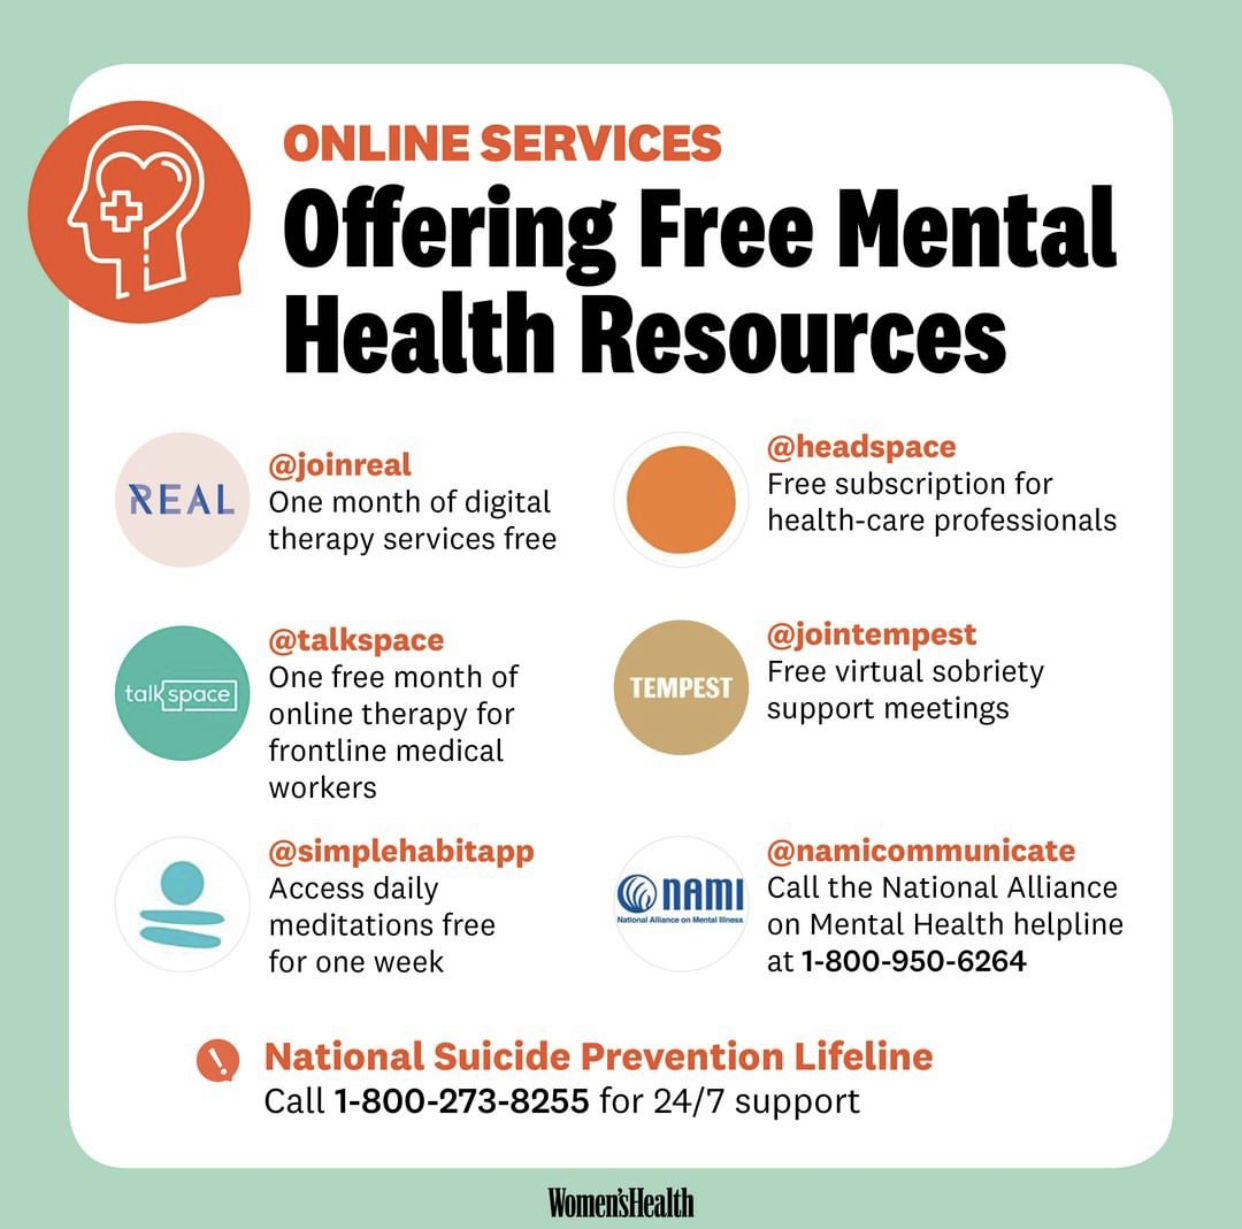 Free Online Mental Health Resources You Should Know About The Social Media Butterfly